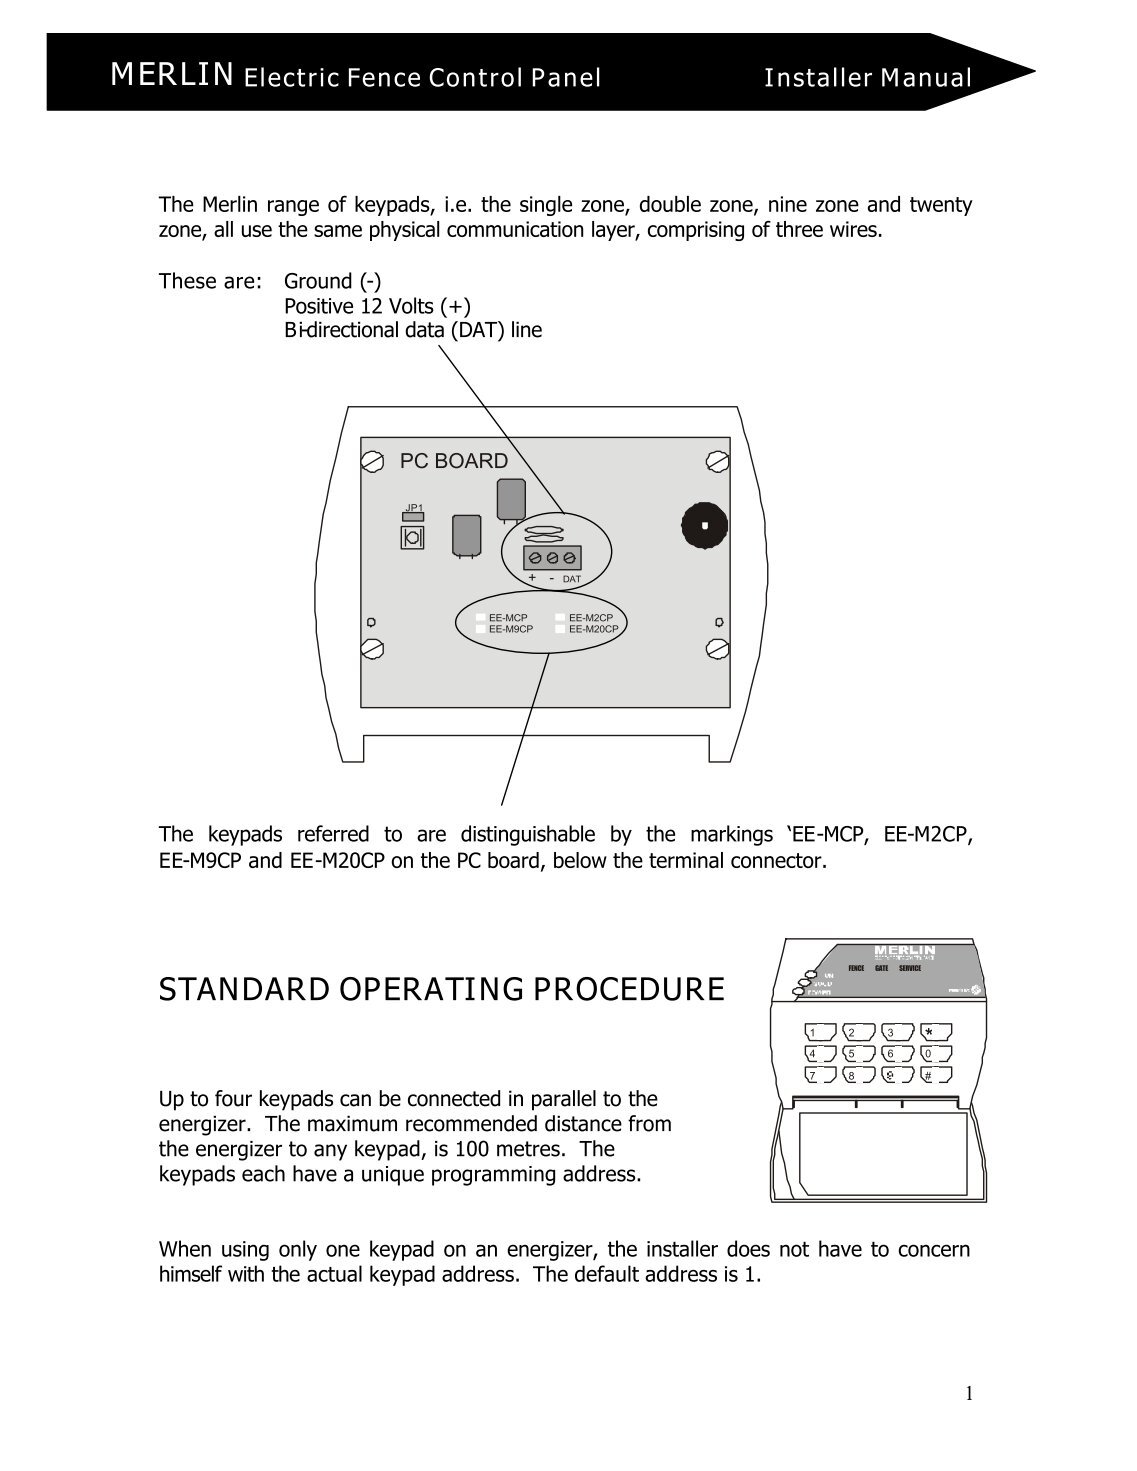 Merlin Electric Fence Wiring Diagram: Sundial Y Plan Wiring Diagram - Wiringdiagrams,Design